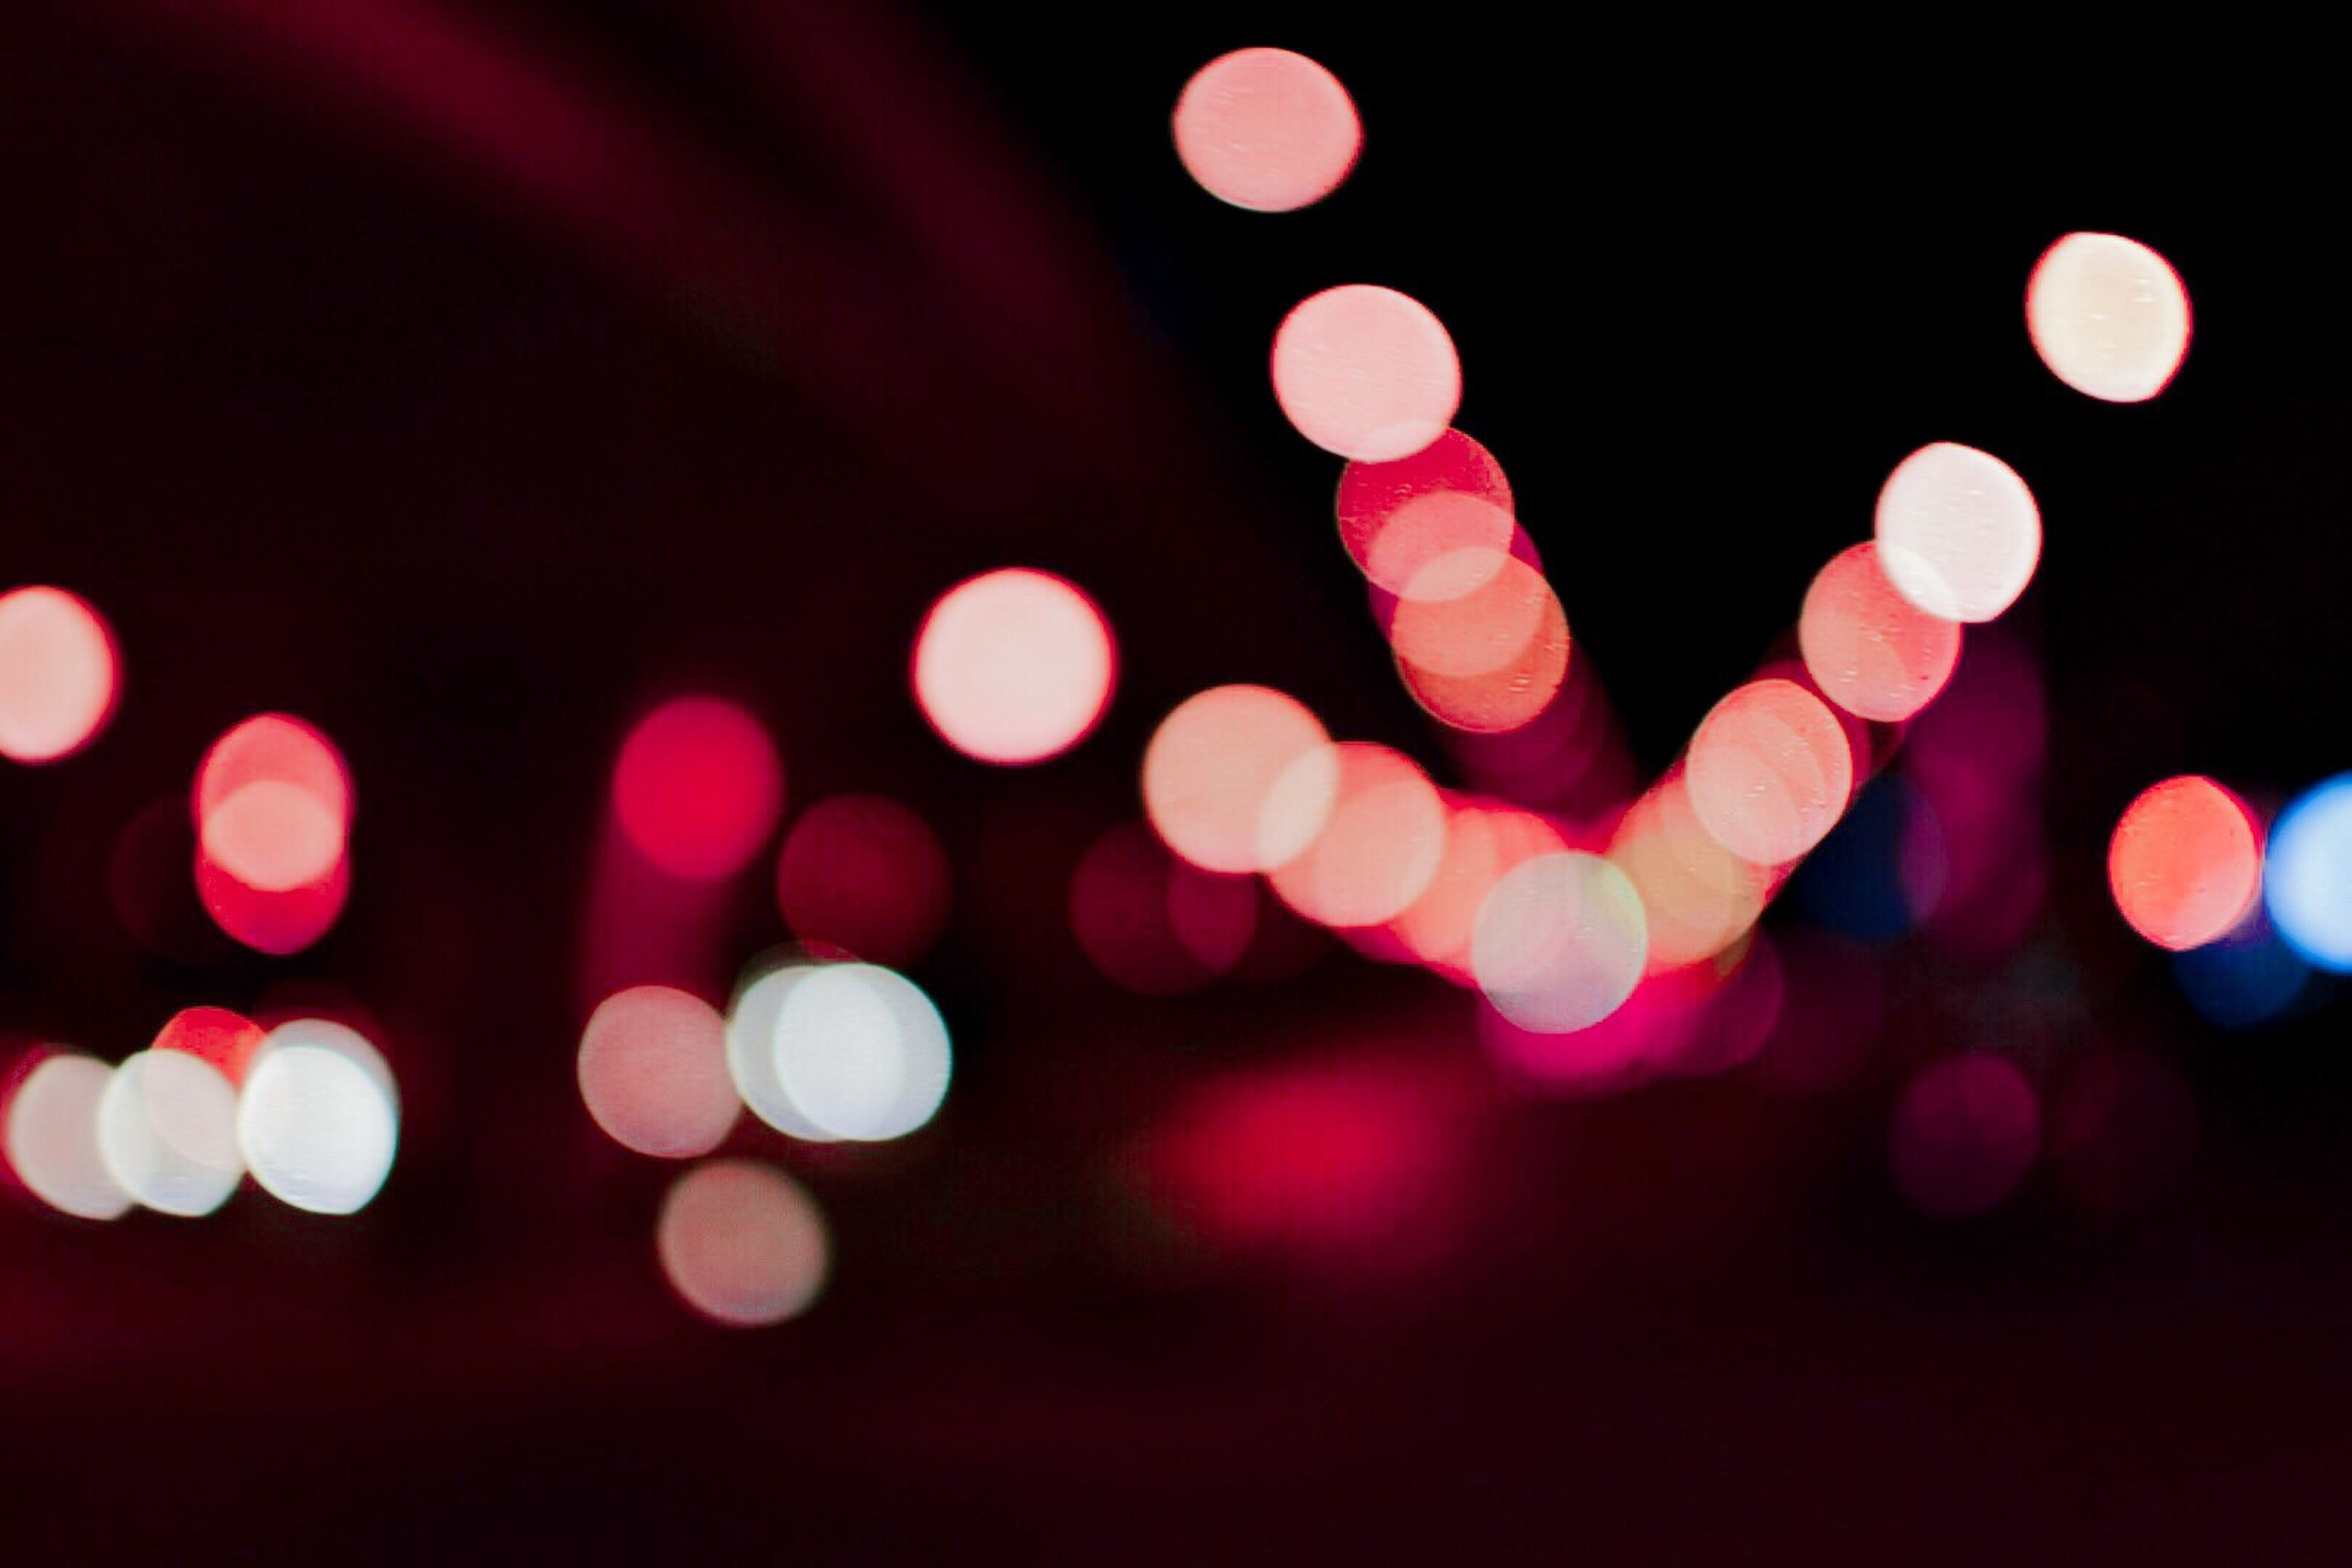 defocused, illuminated, circle, lighting equipment, night, abstract, multi colored, lens flare, light - natural phenomenon, pattern, glowing, spotted, ideas, blurred motion, city, outdoors, light, geometric shape, electric light, city life, dark, pink color, sky, nightlife, no people, bright, colorful, fairy lights